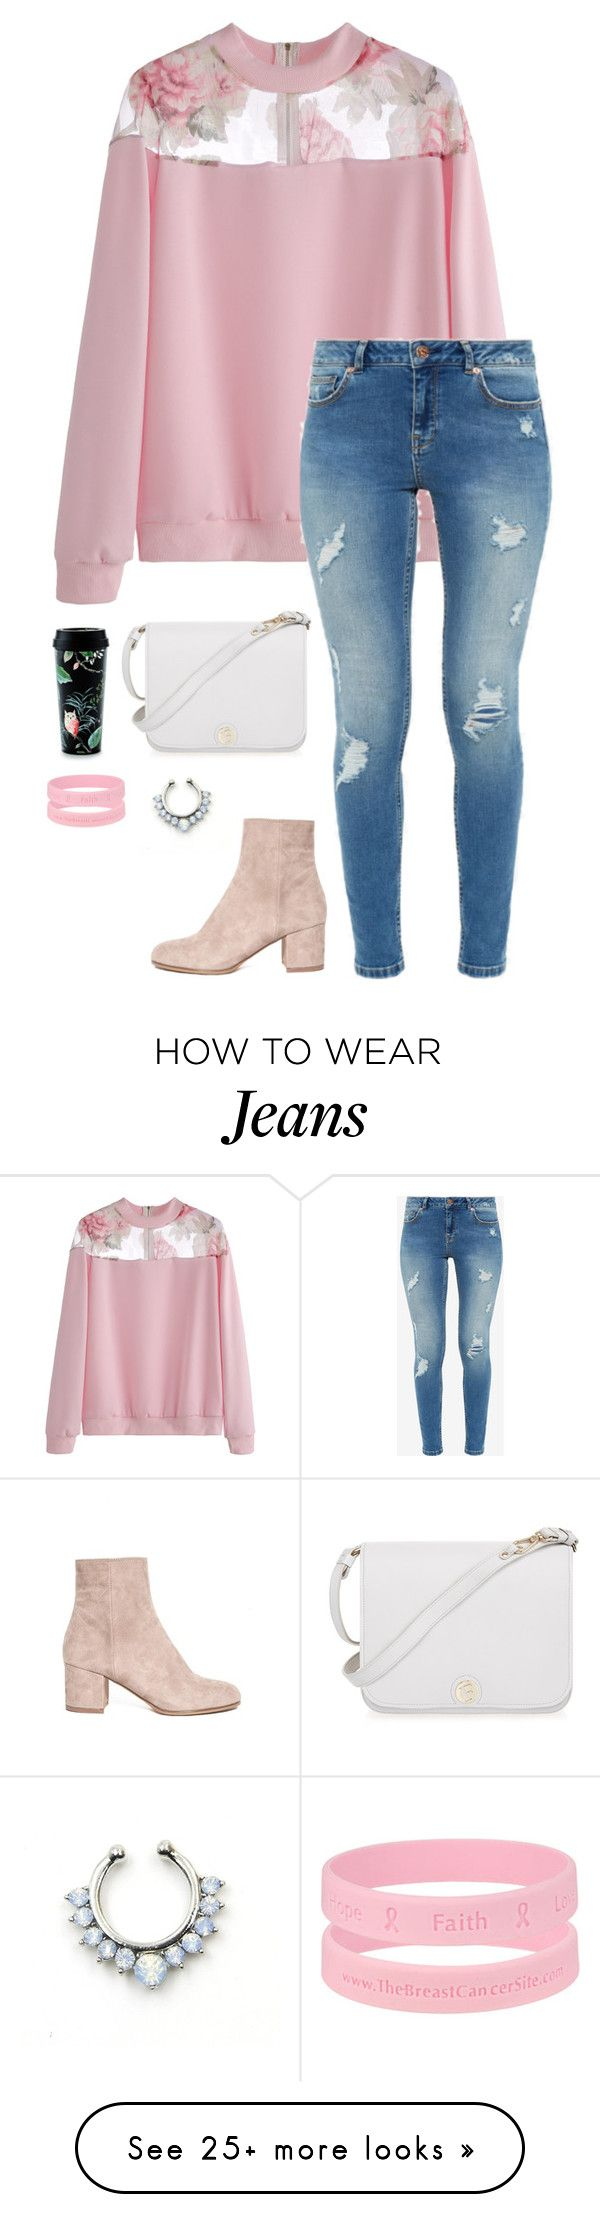 """""""Pink girl"""" by eellcat on Polyvore featuring Ted Baker, Kate Spade and Furla"""